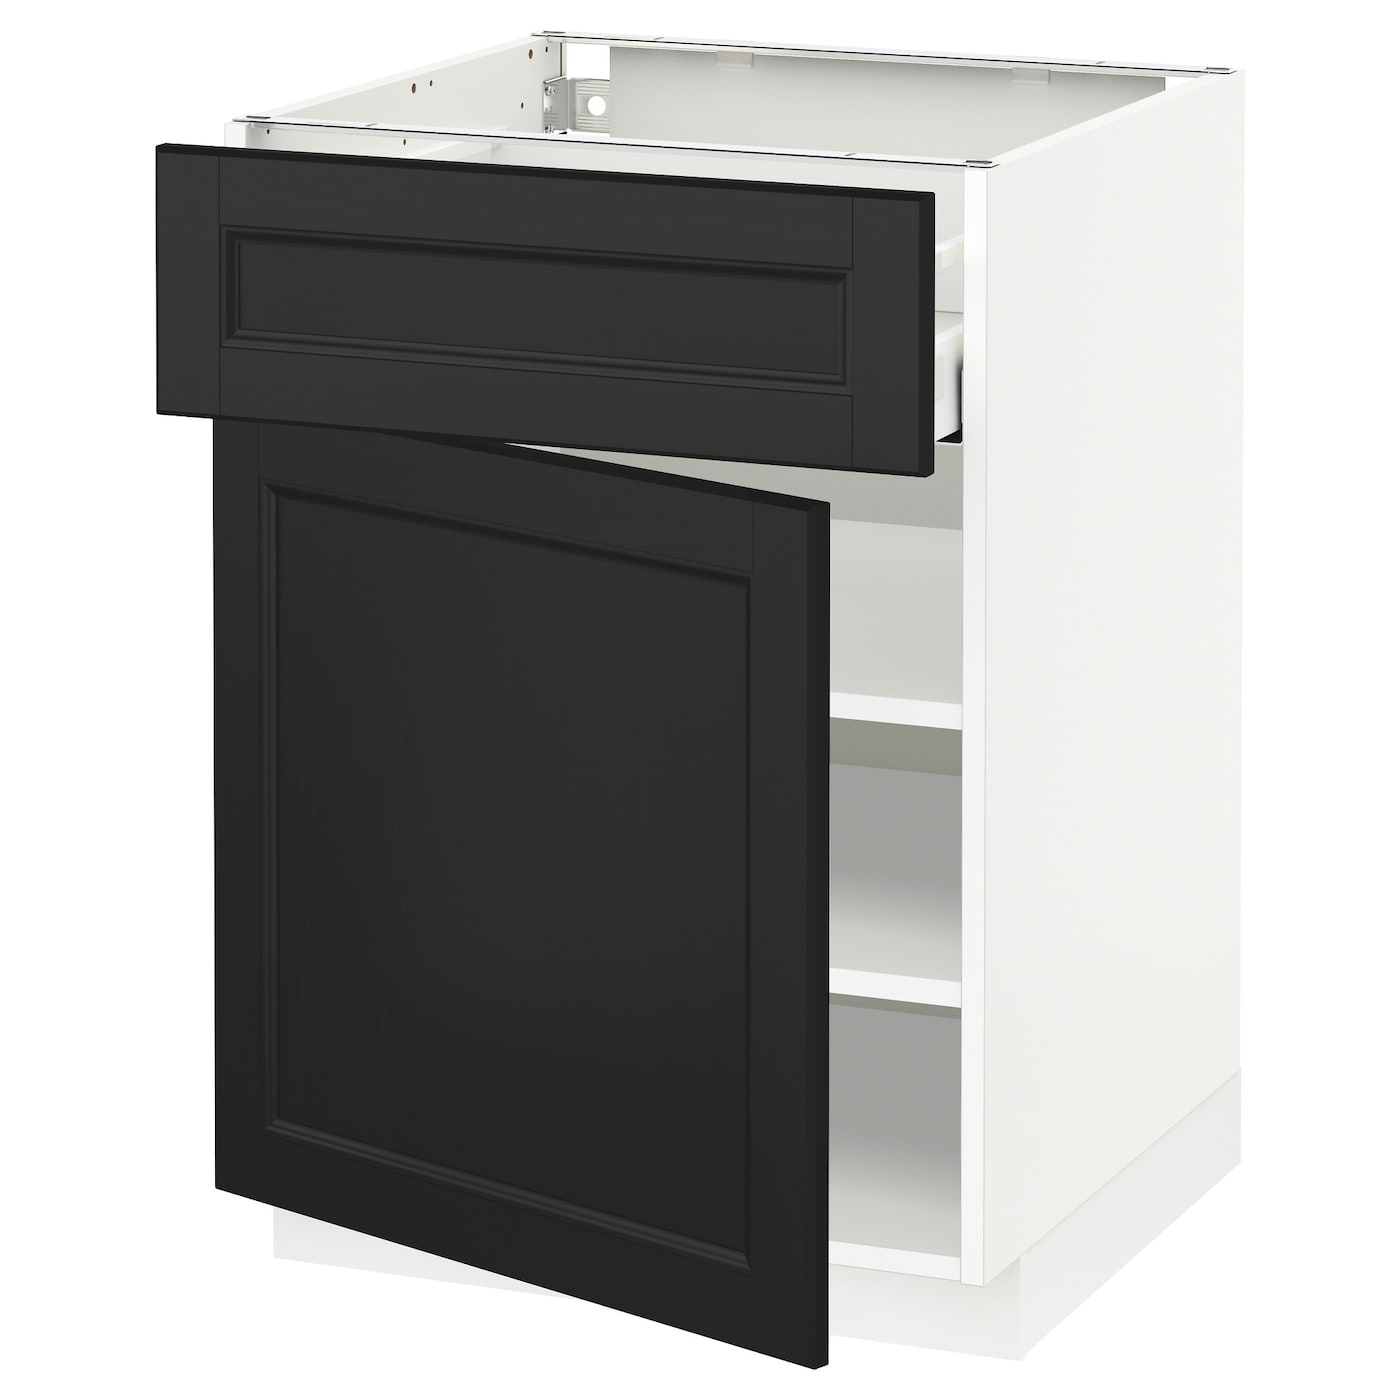 Metod maximera base cabinet with drawer door white laxarby for White cabinets with black doors